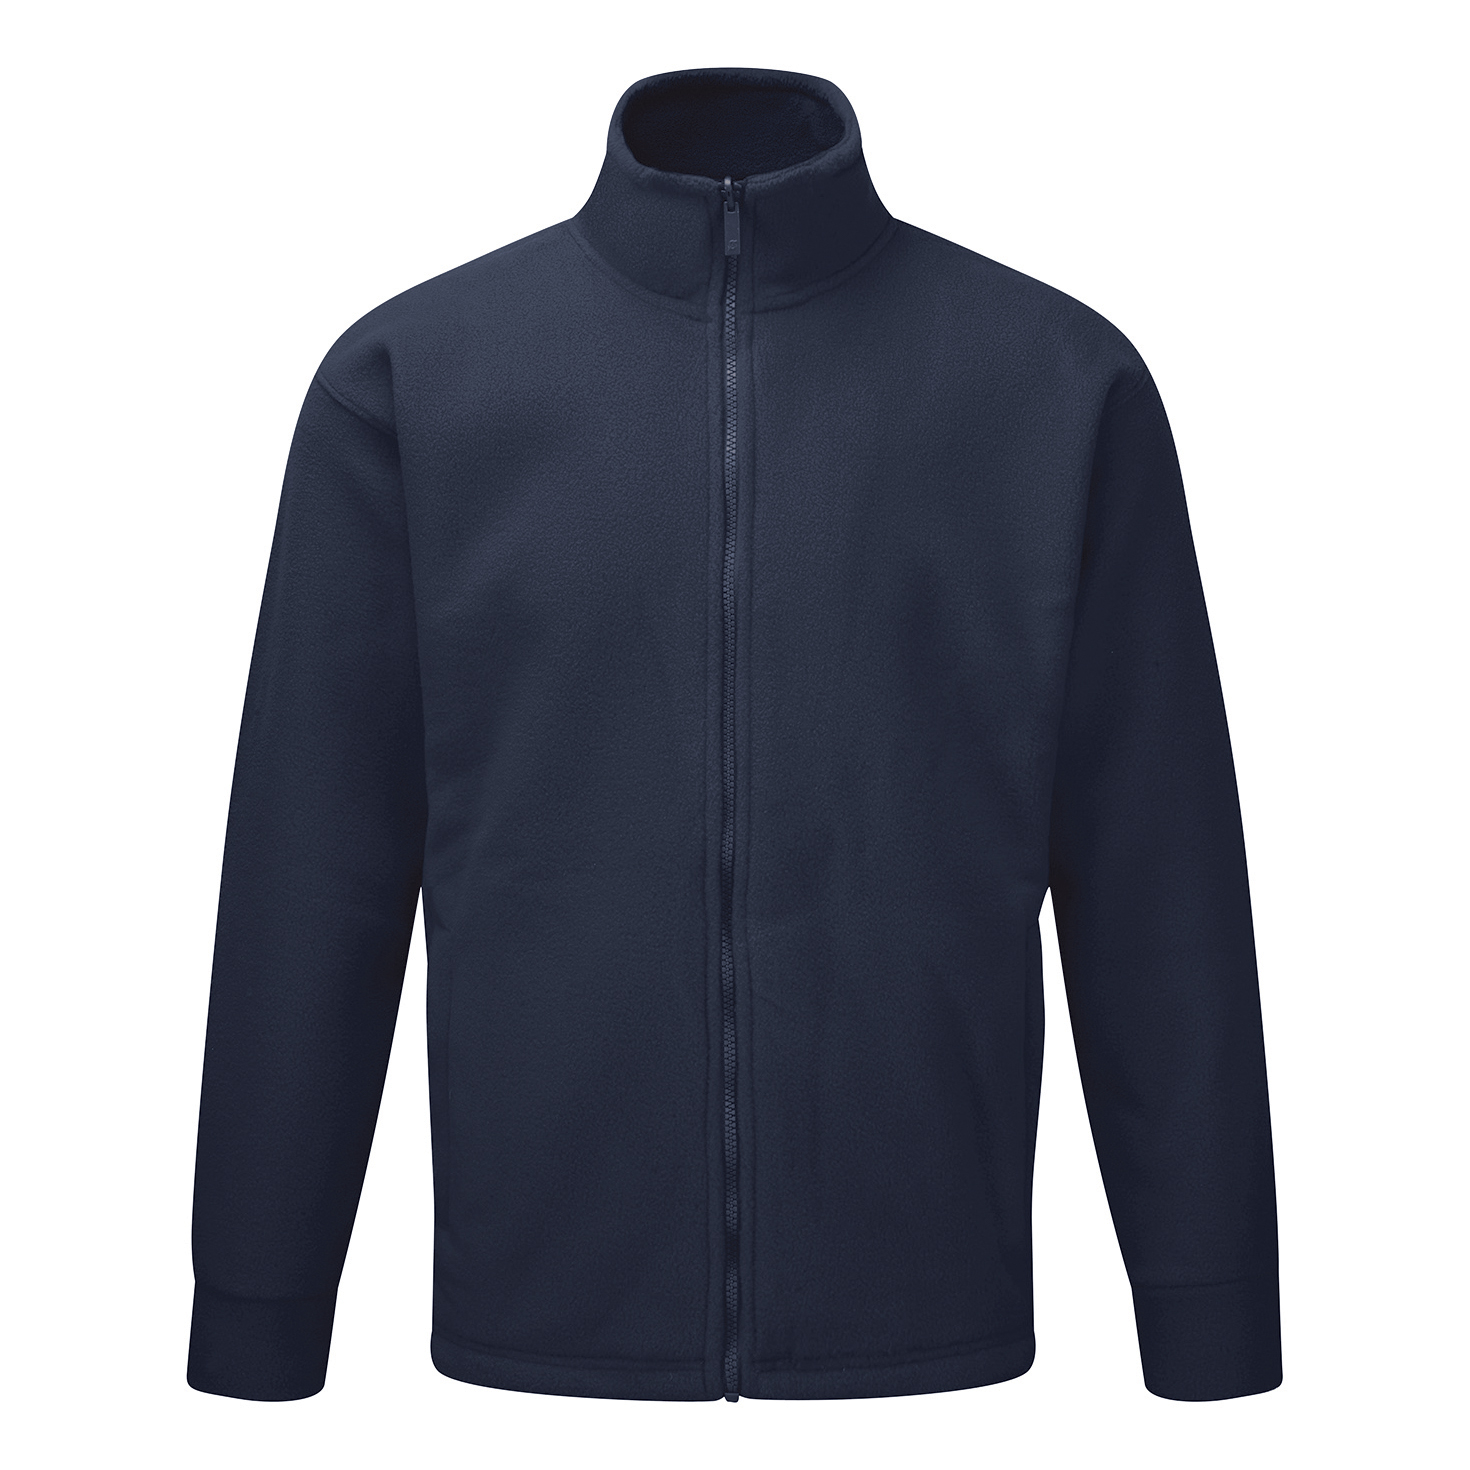 Basic Fleece Jacket Elasticated Cuffs and Full Zip Front 4XL Navy 1-3 Days Lead Time